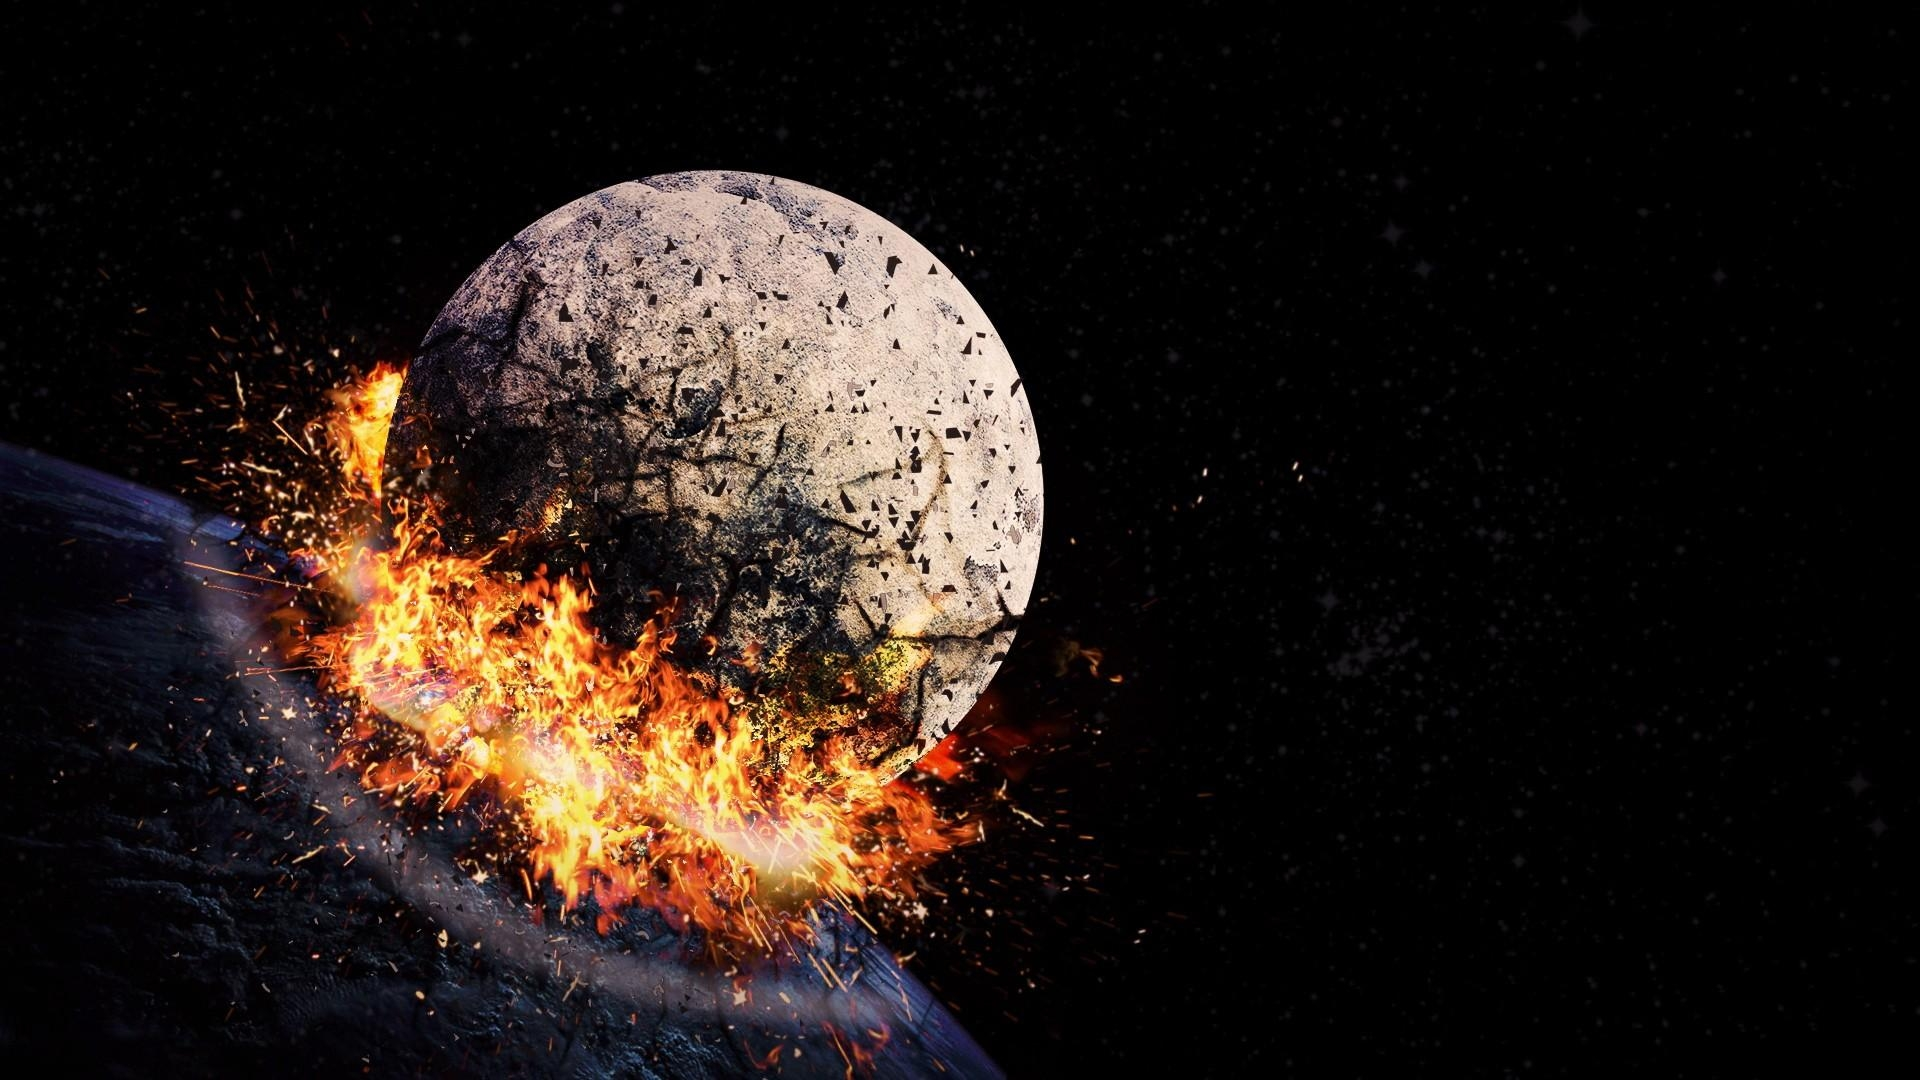 Download wallpaper 1920x1080 space hit explosion blast for Space blast 3d